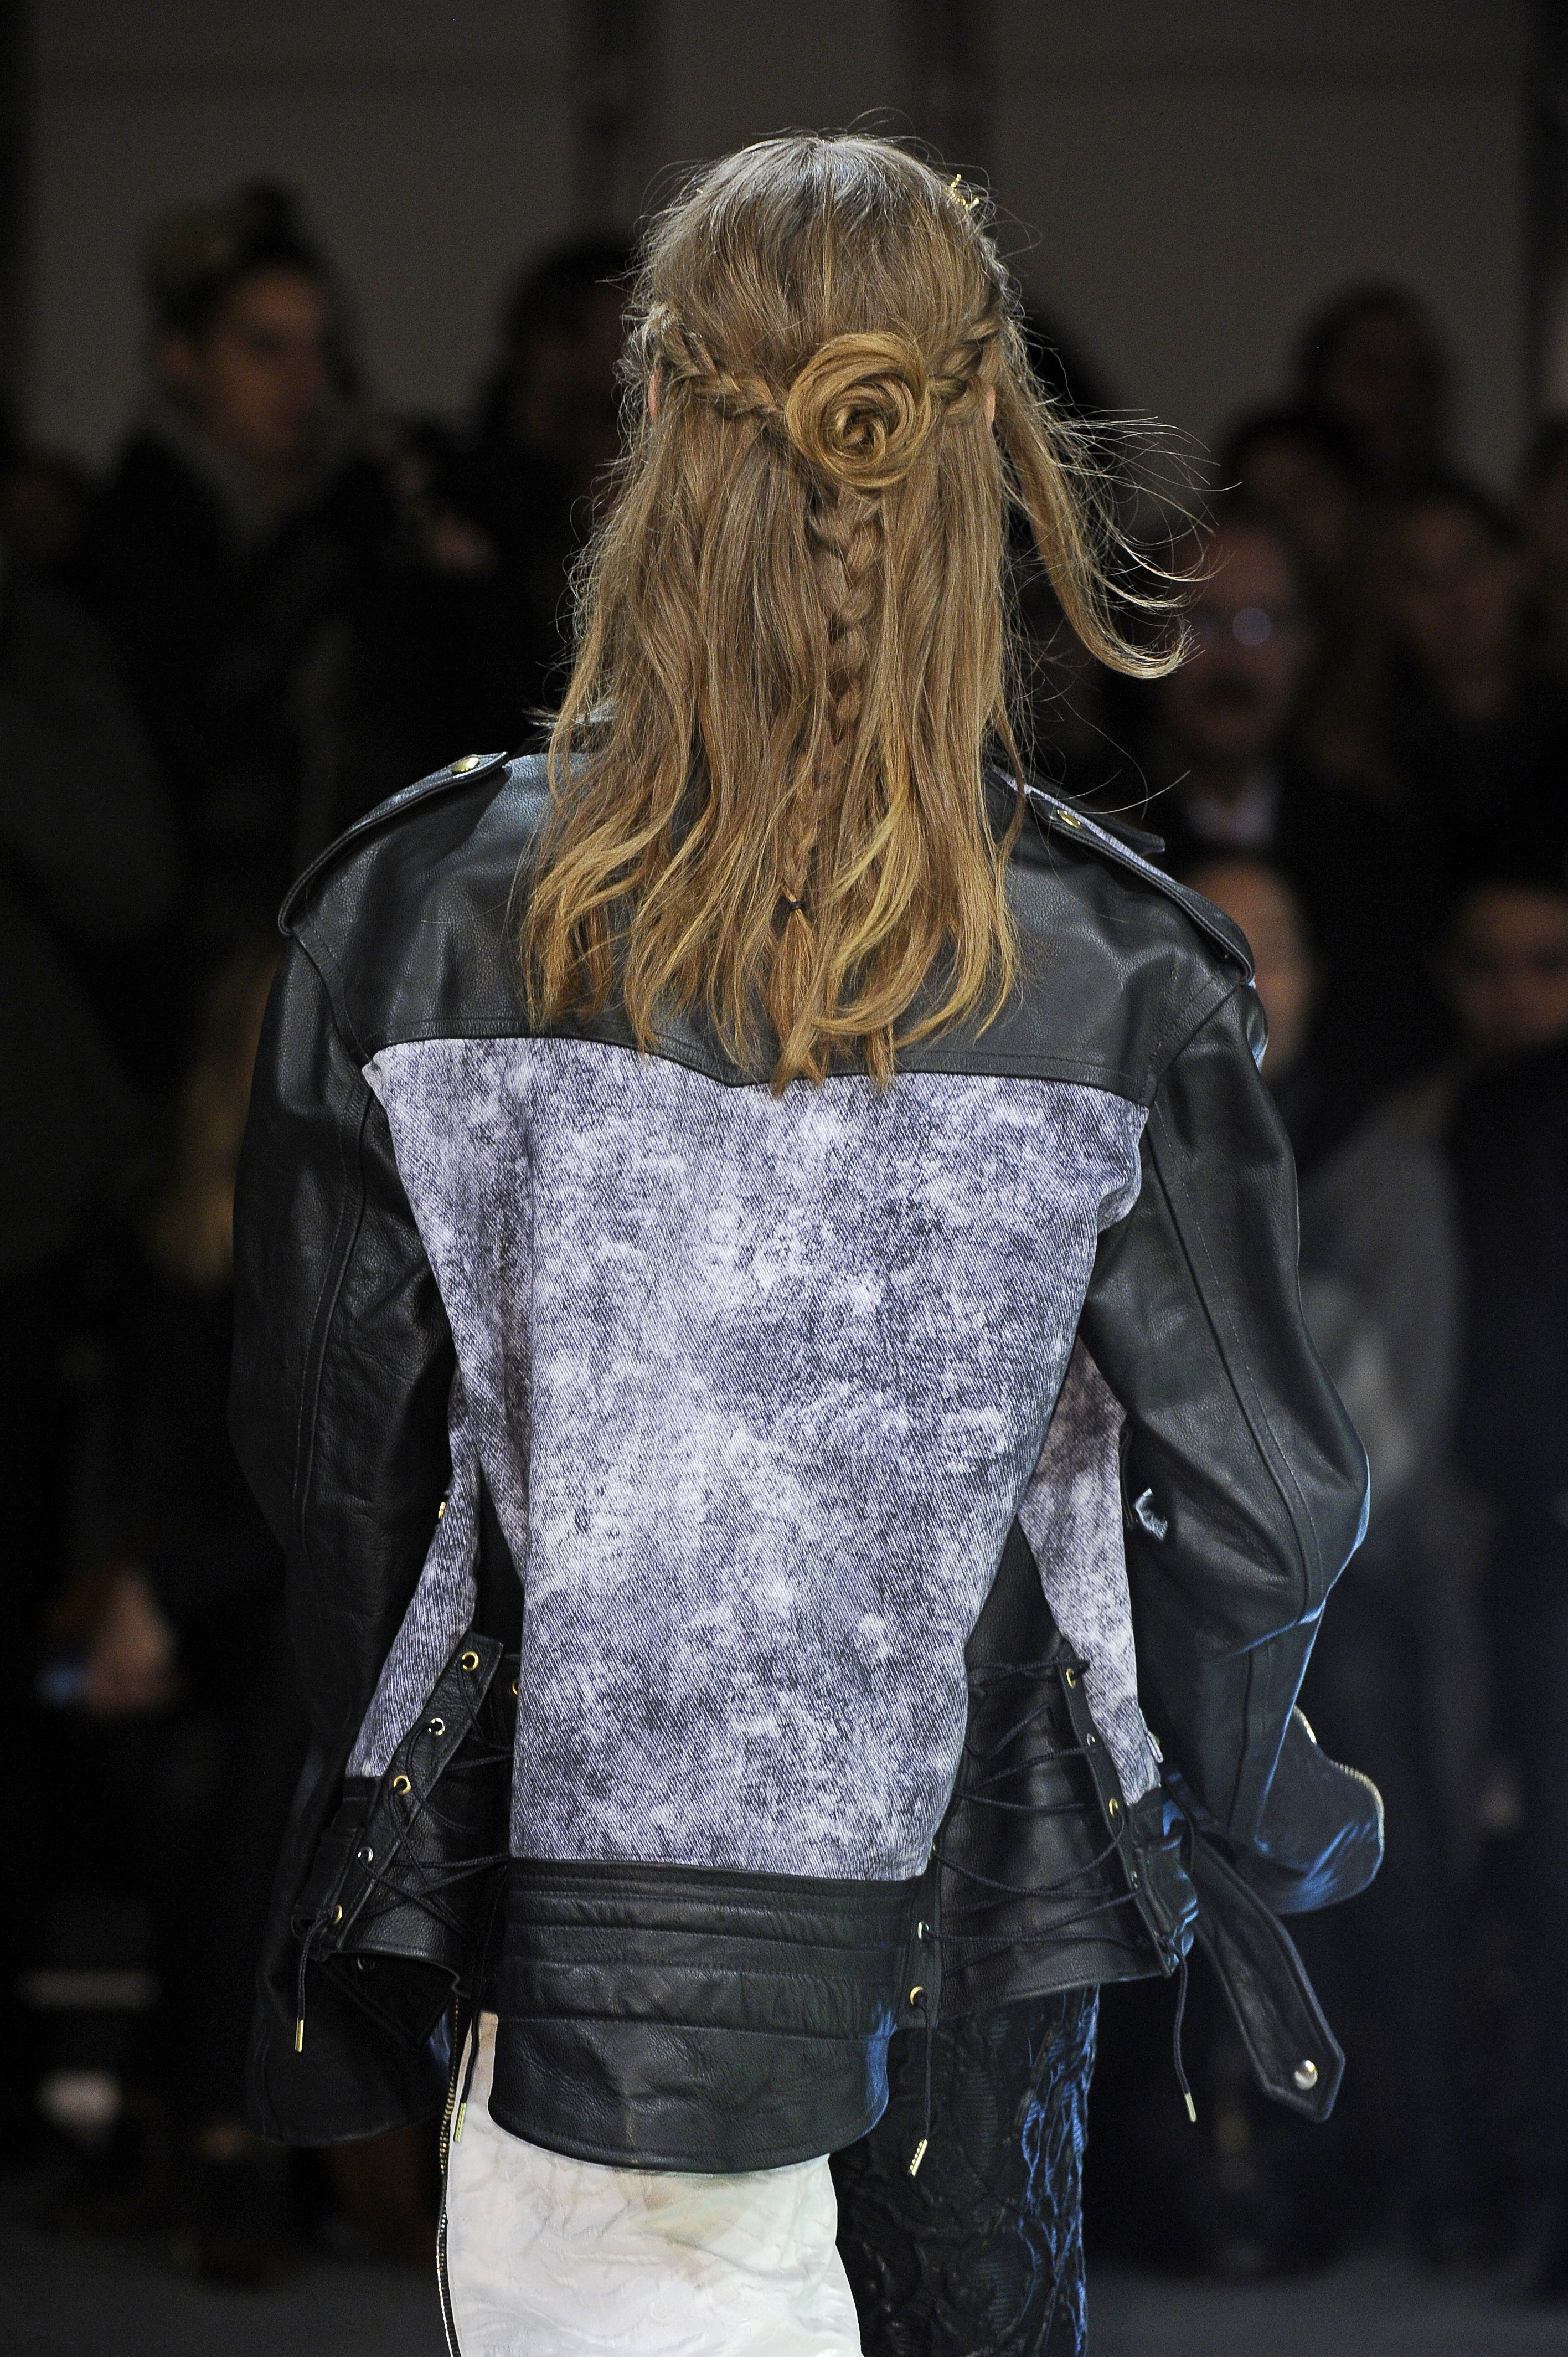 A rosette-shaped bun at Rodarte's Fall/Winter 2013 show at NYFW.